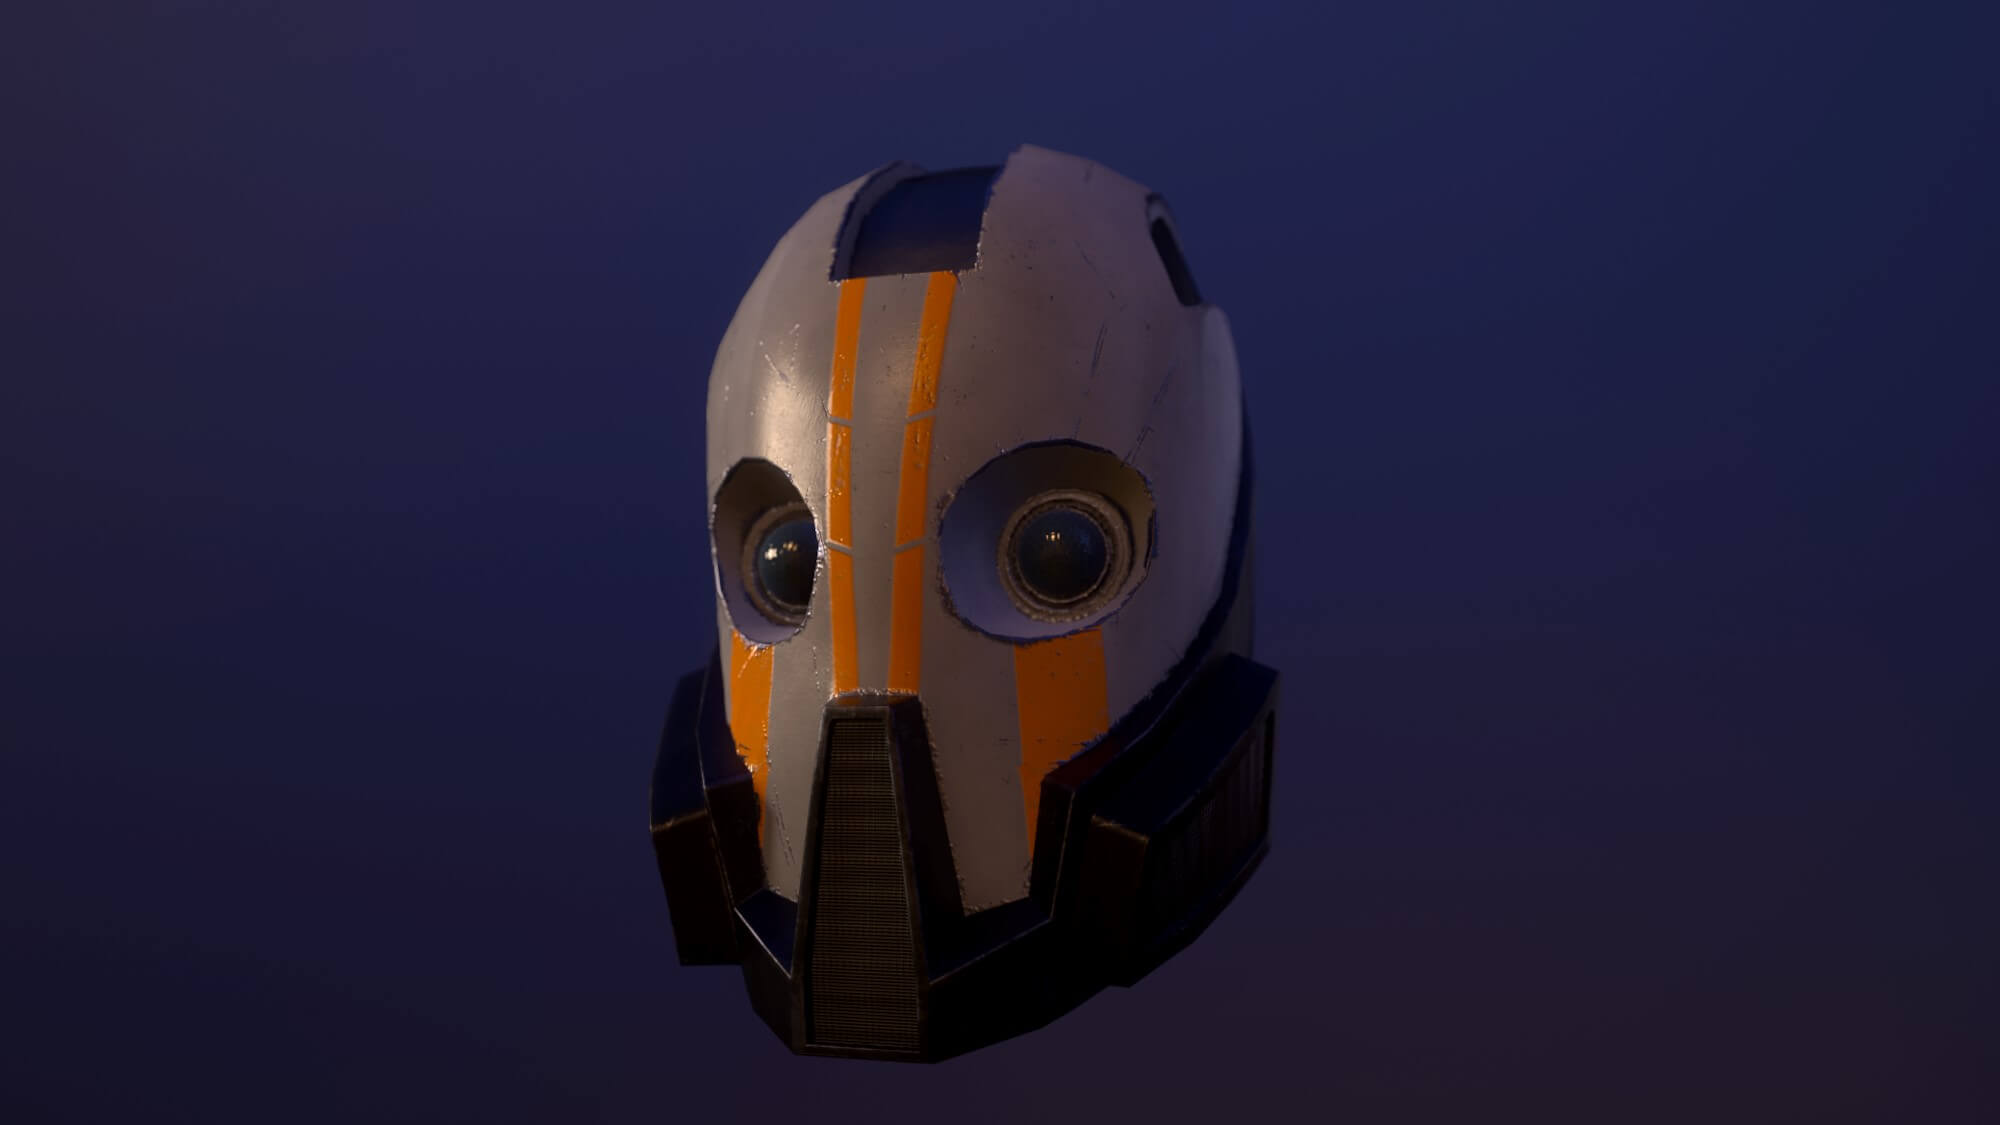 a full-face, painted helmet with eye lenses and breathing mask built in